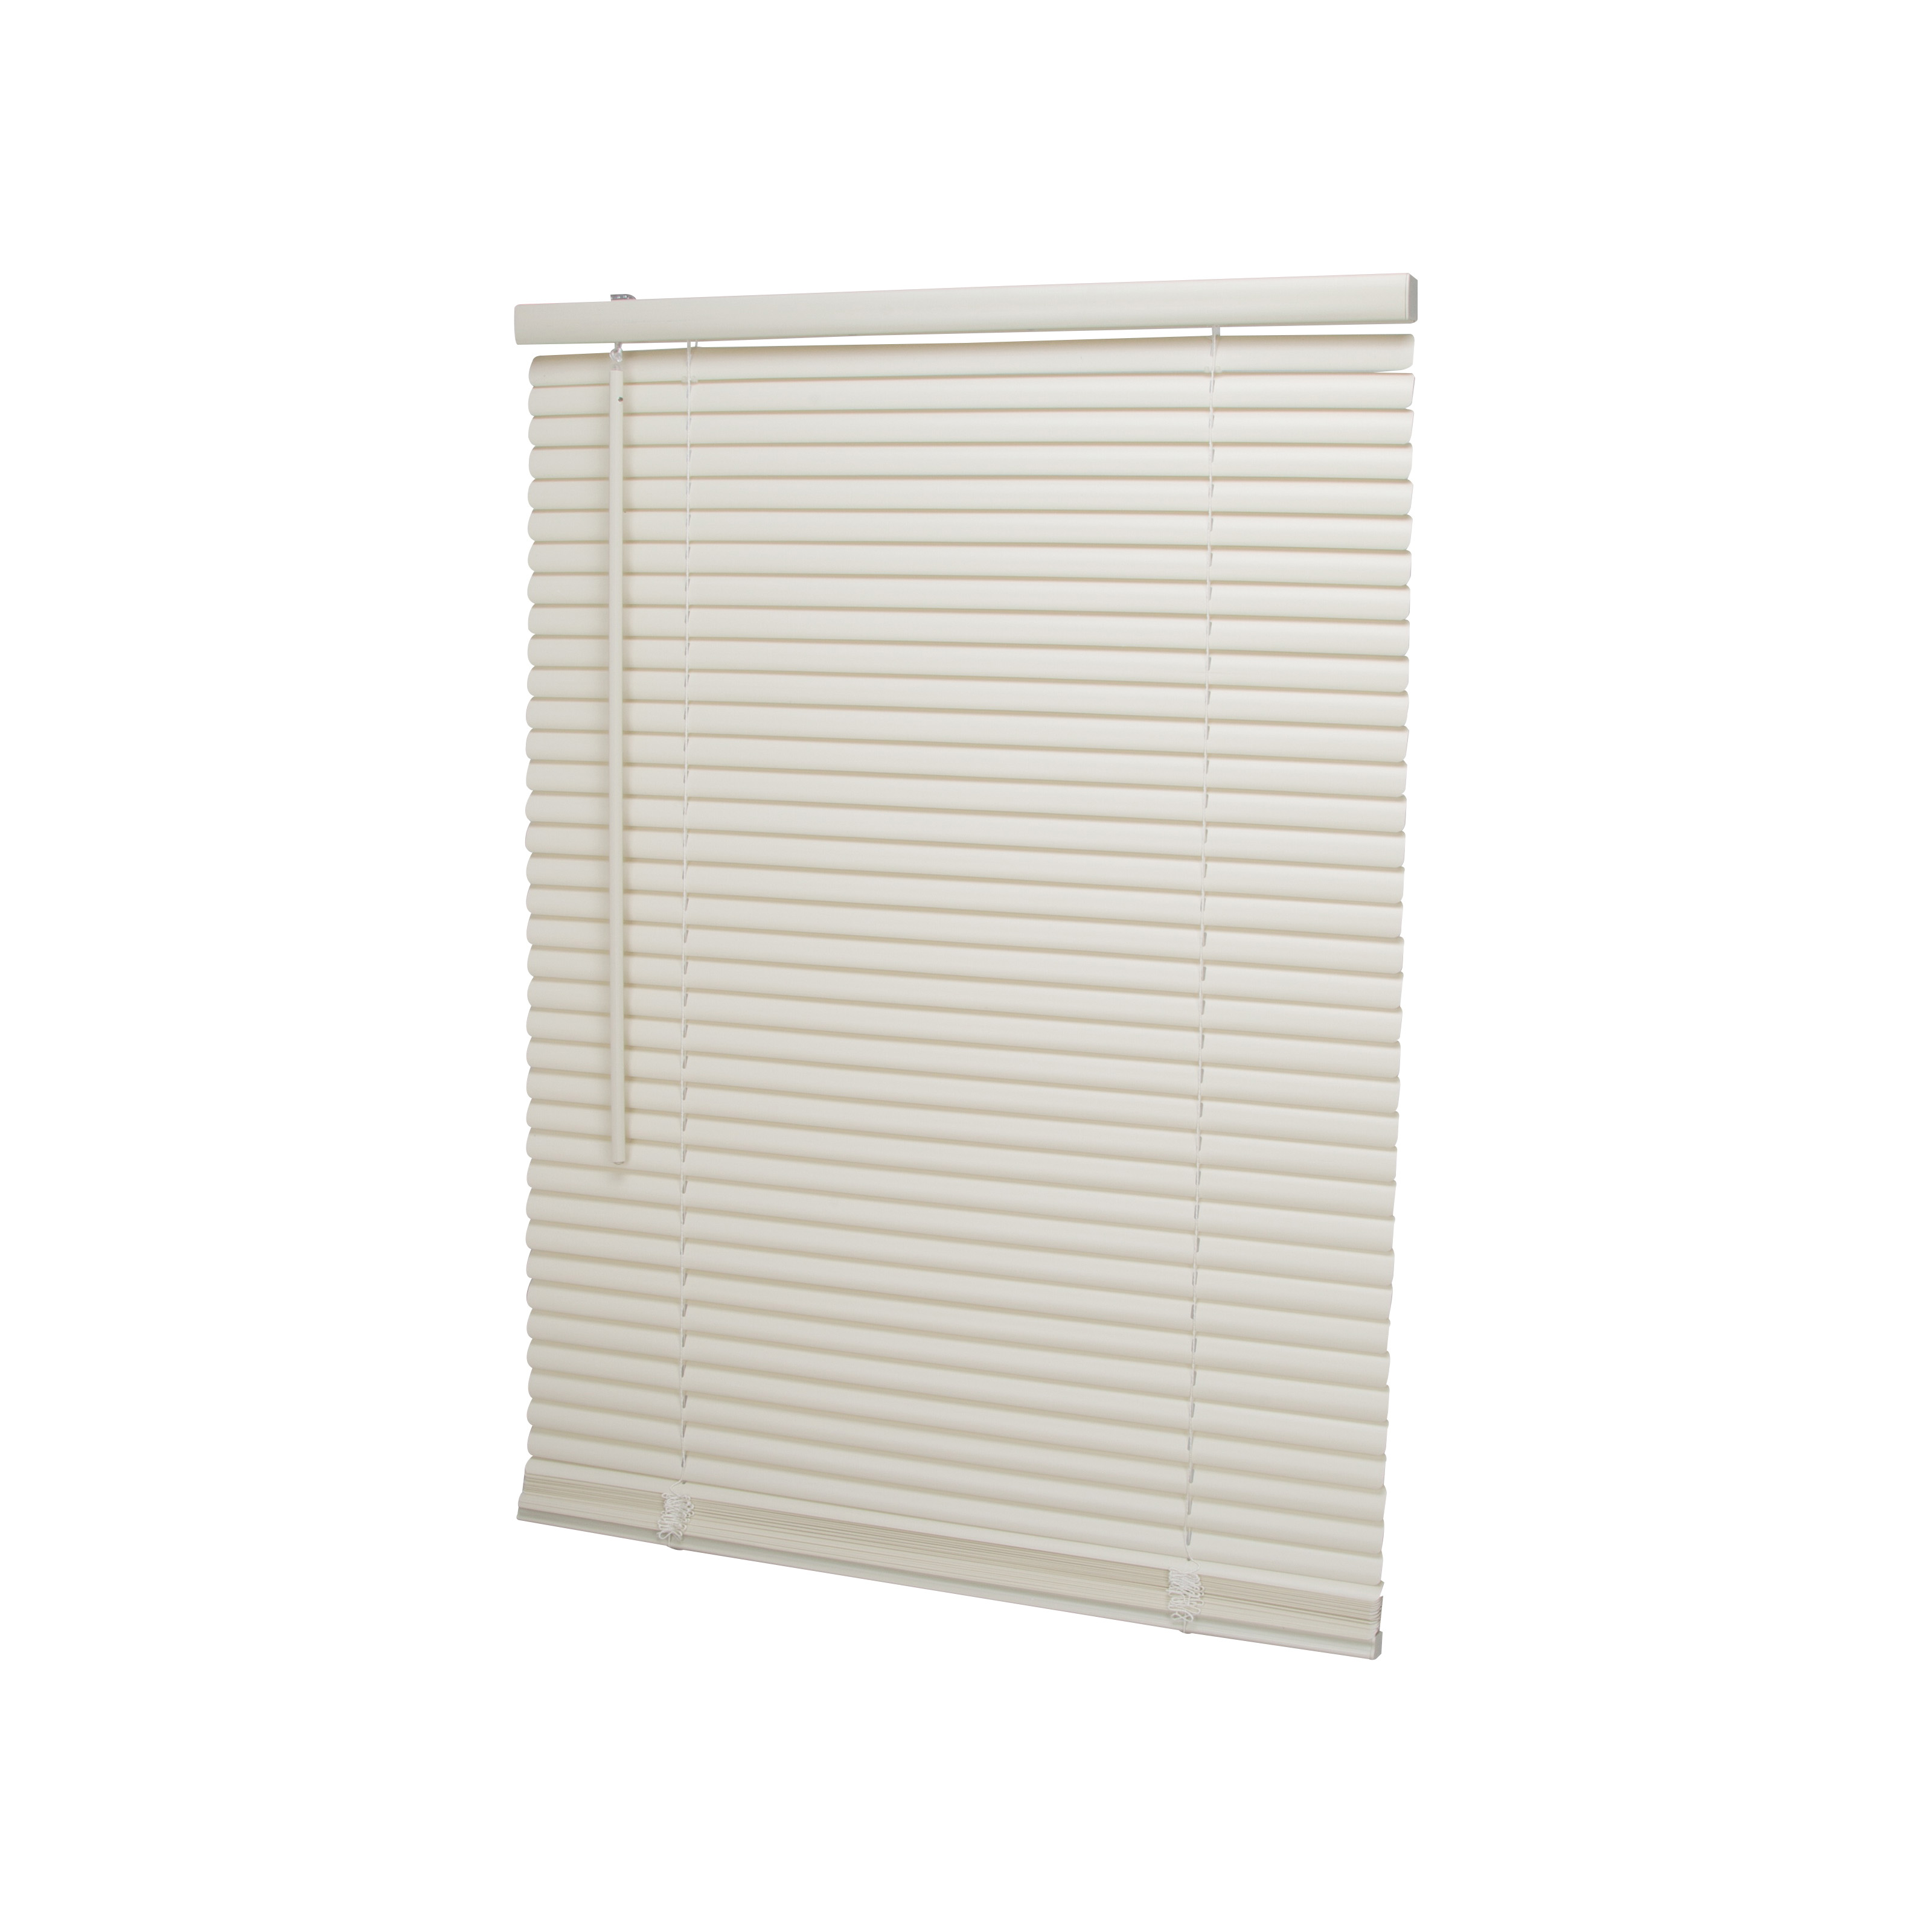 Picture of Simple Spaces PVCMB-0AA Cordless Mini Blind, 42 in L, 23 in W, Vinyl, Alabaster